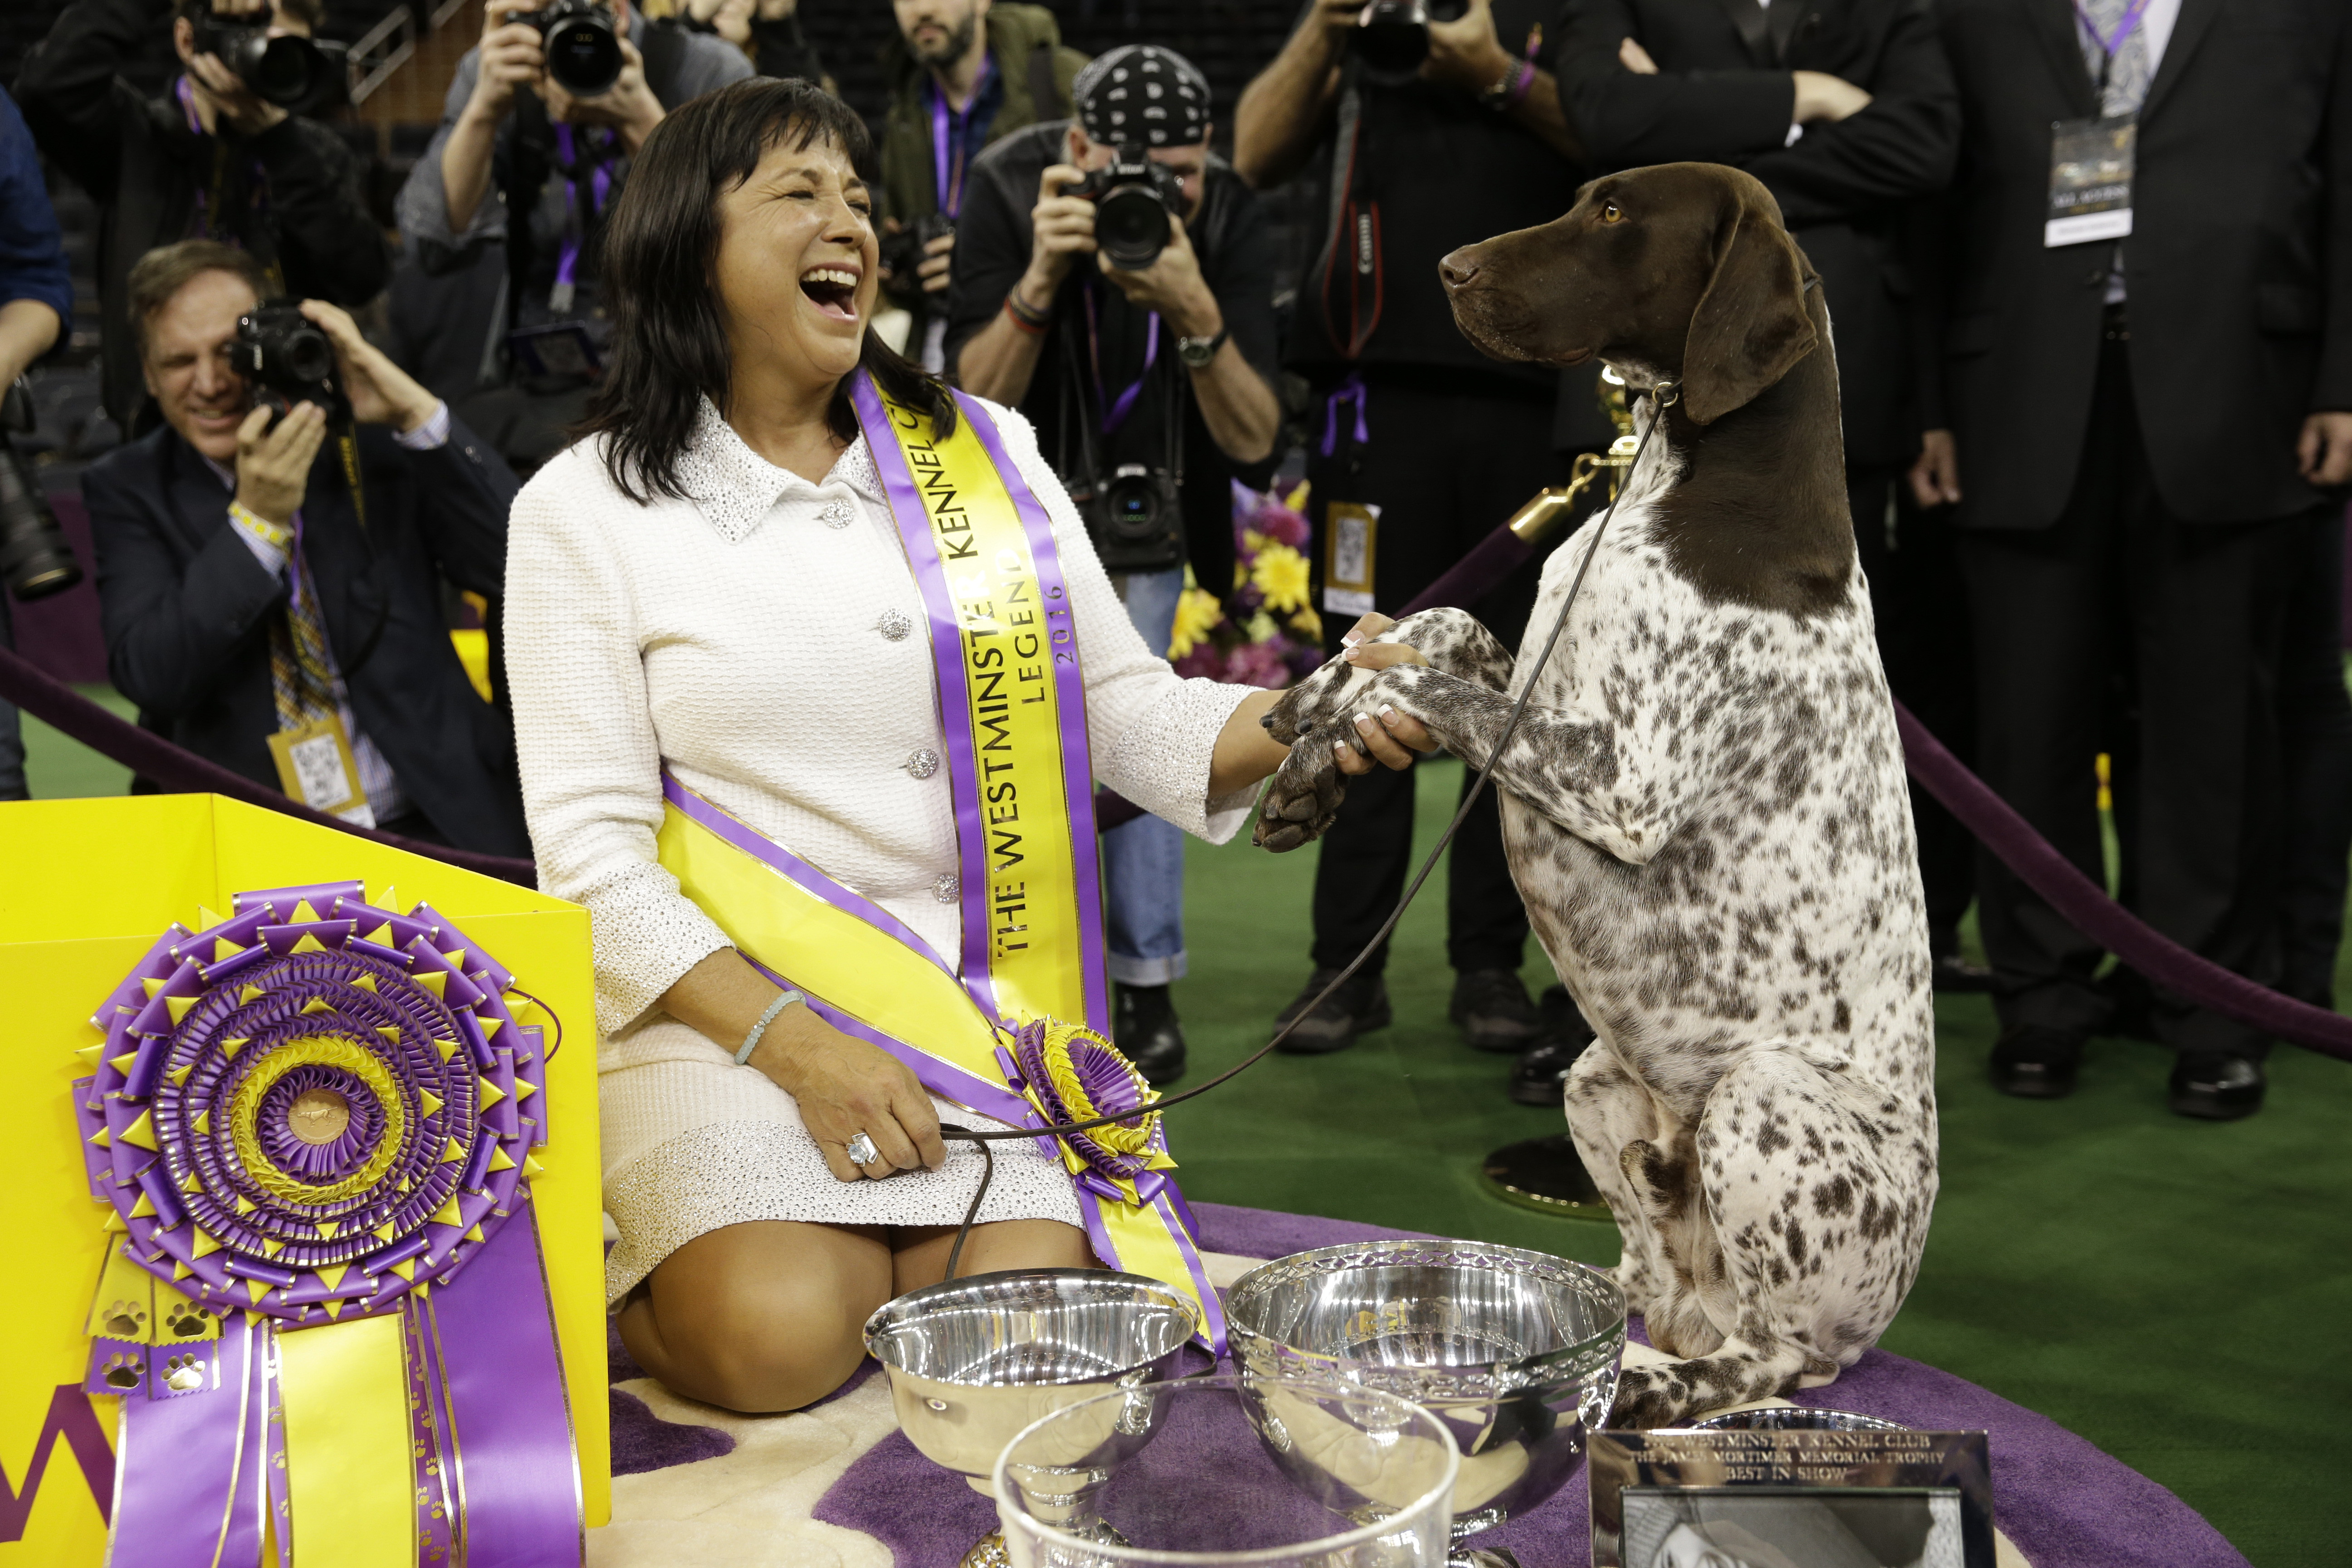 Valerie Nunes-Atkinson and CJ, a German shorthaired pointer, pose after CJ won best in show at the 140th Westminster Kennel Club dog show at Madison Square Garden in New York City, on Feb. 16, 2016.